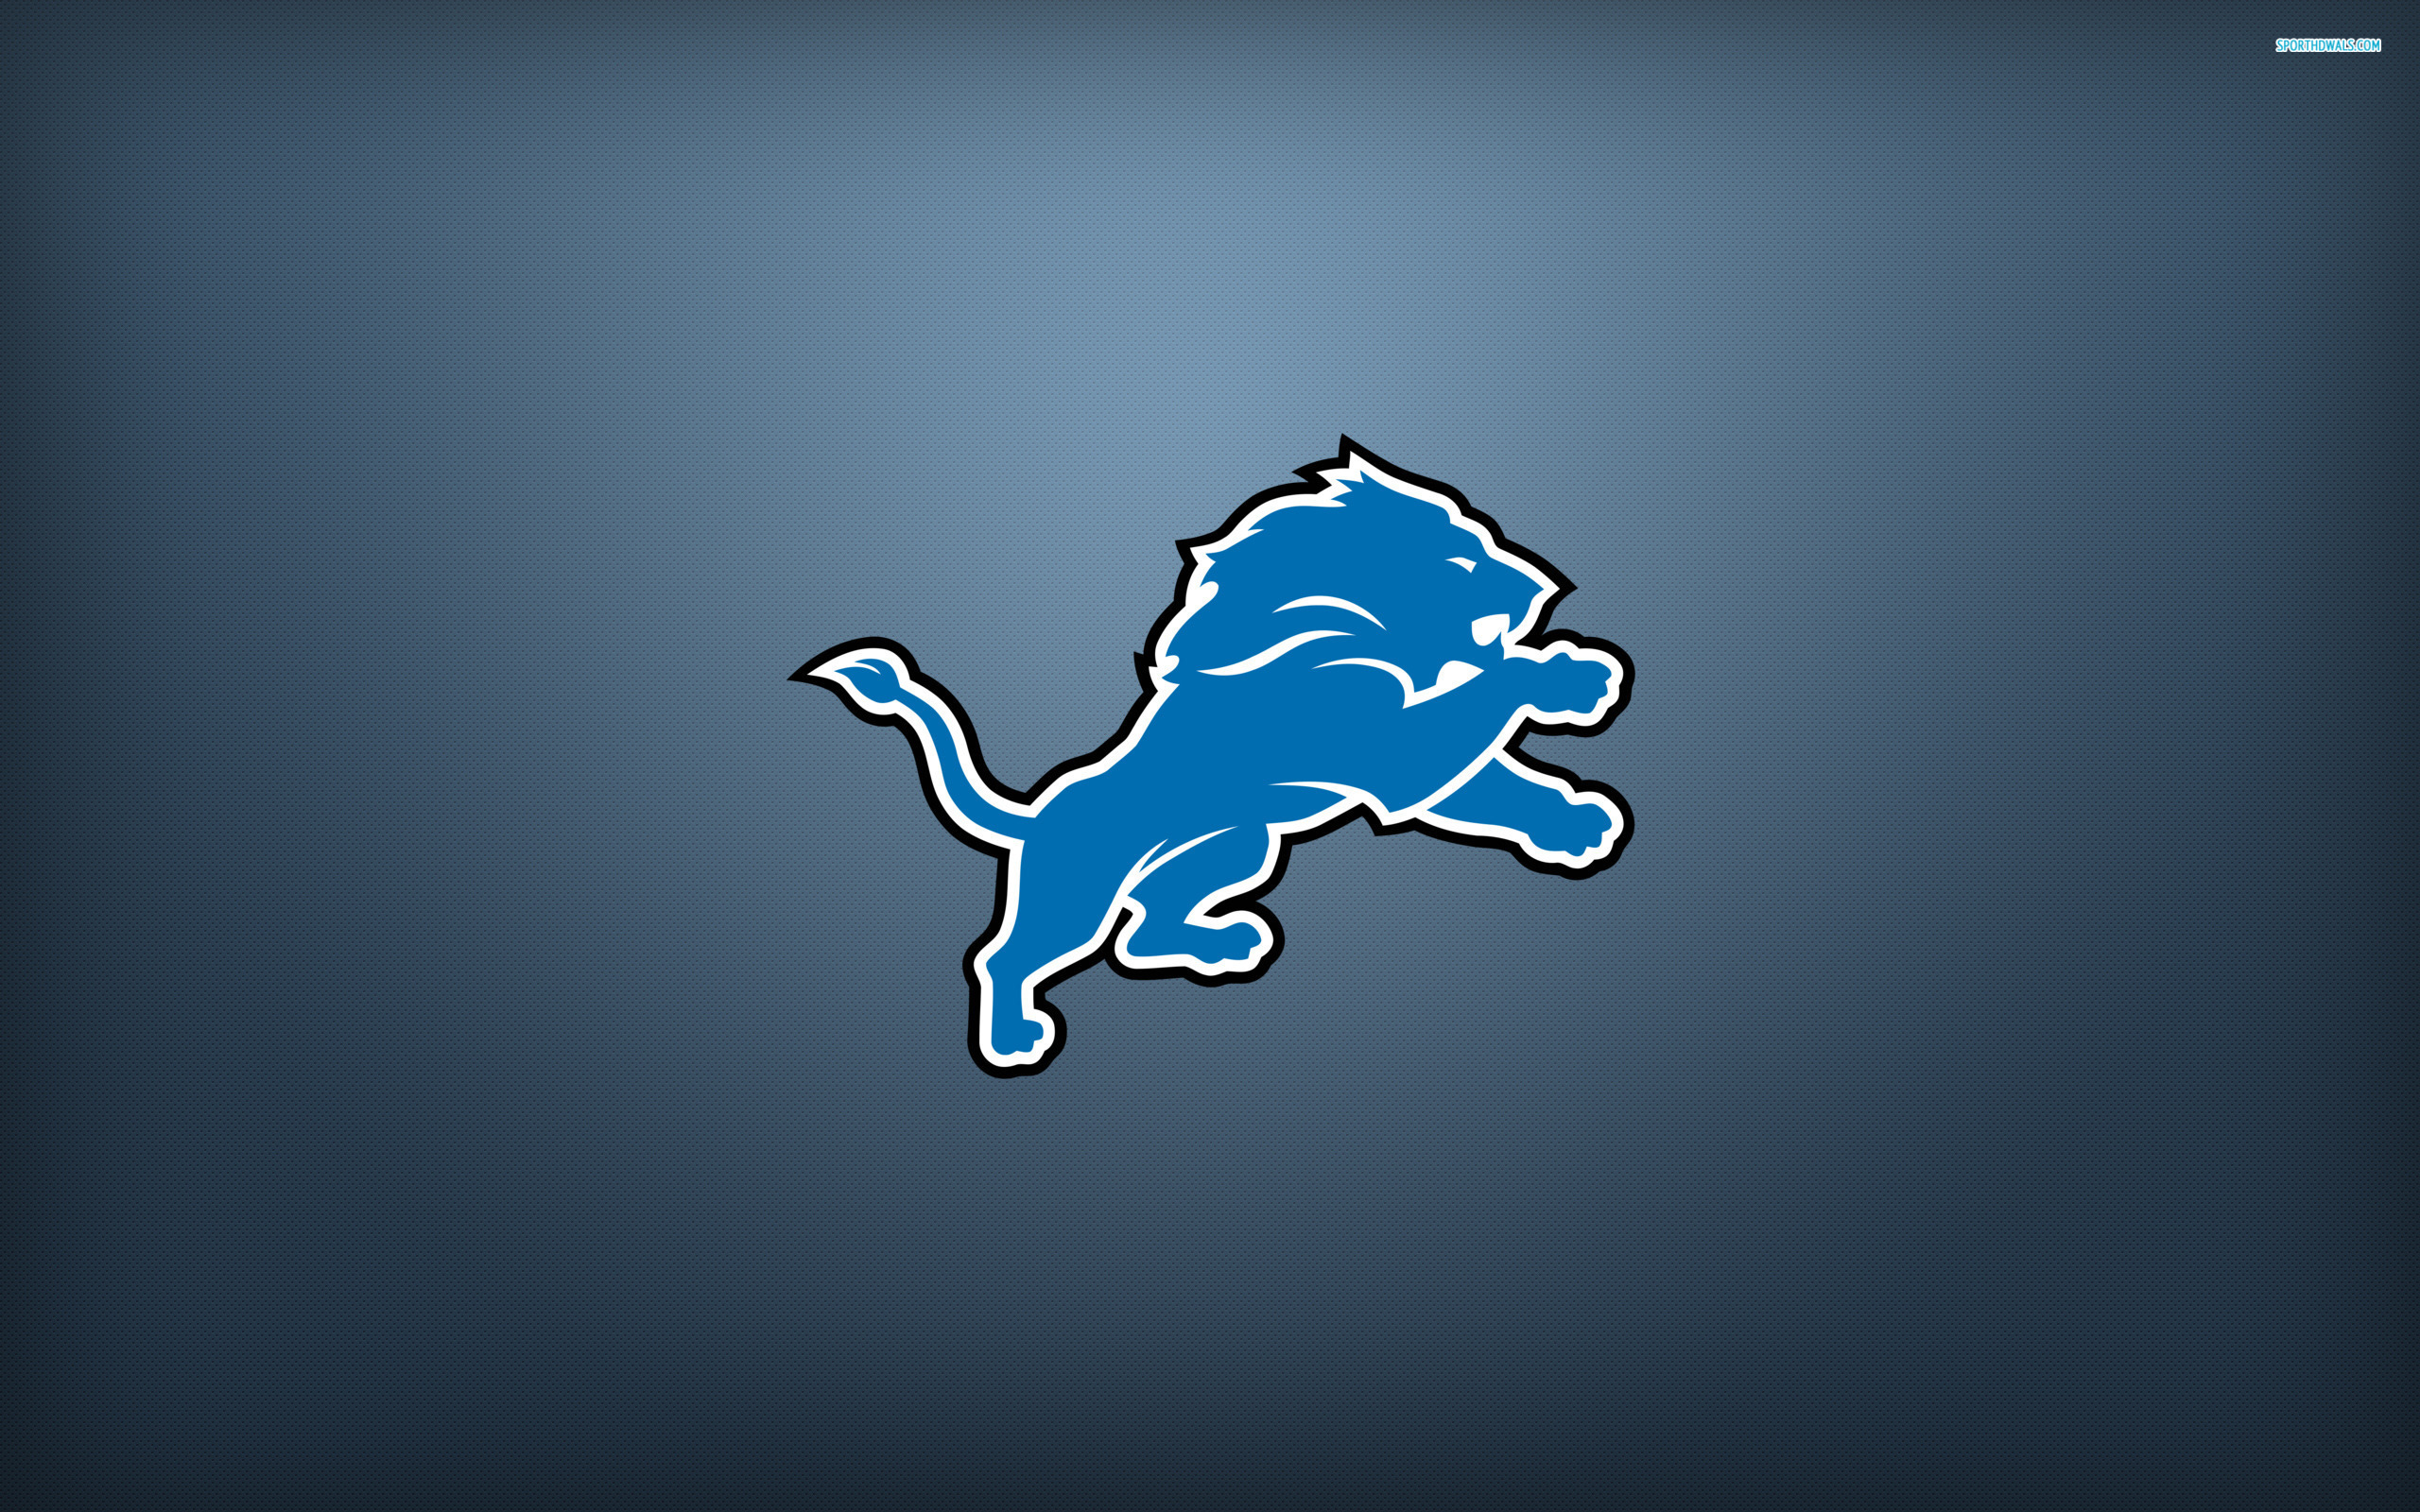 Awe Inspiring Detroit Lions Blue Logo Bright Backgrounds Nfl Wallpapers 2560x1600px